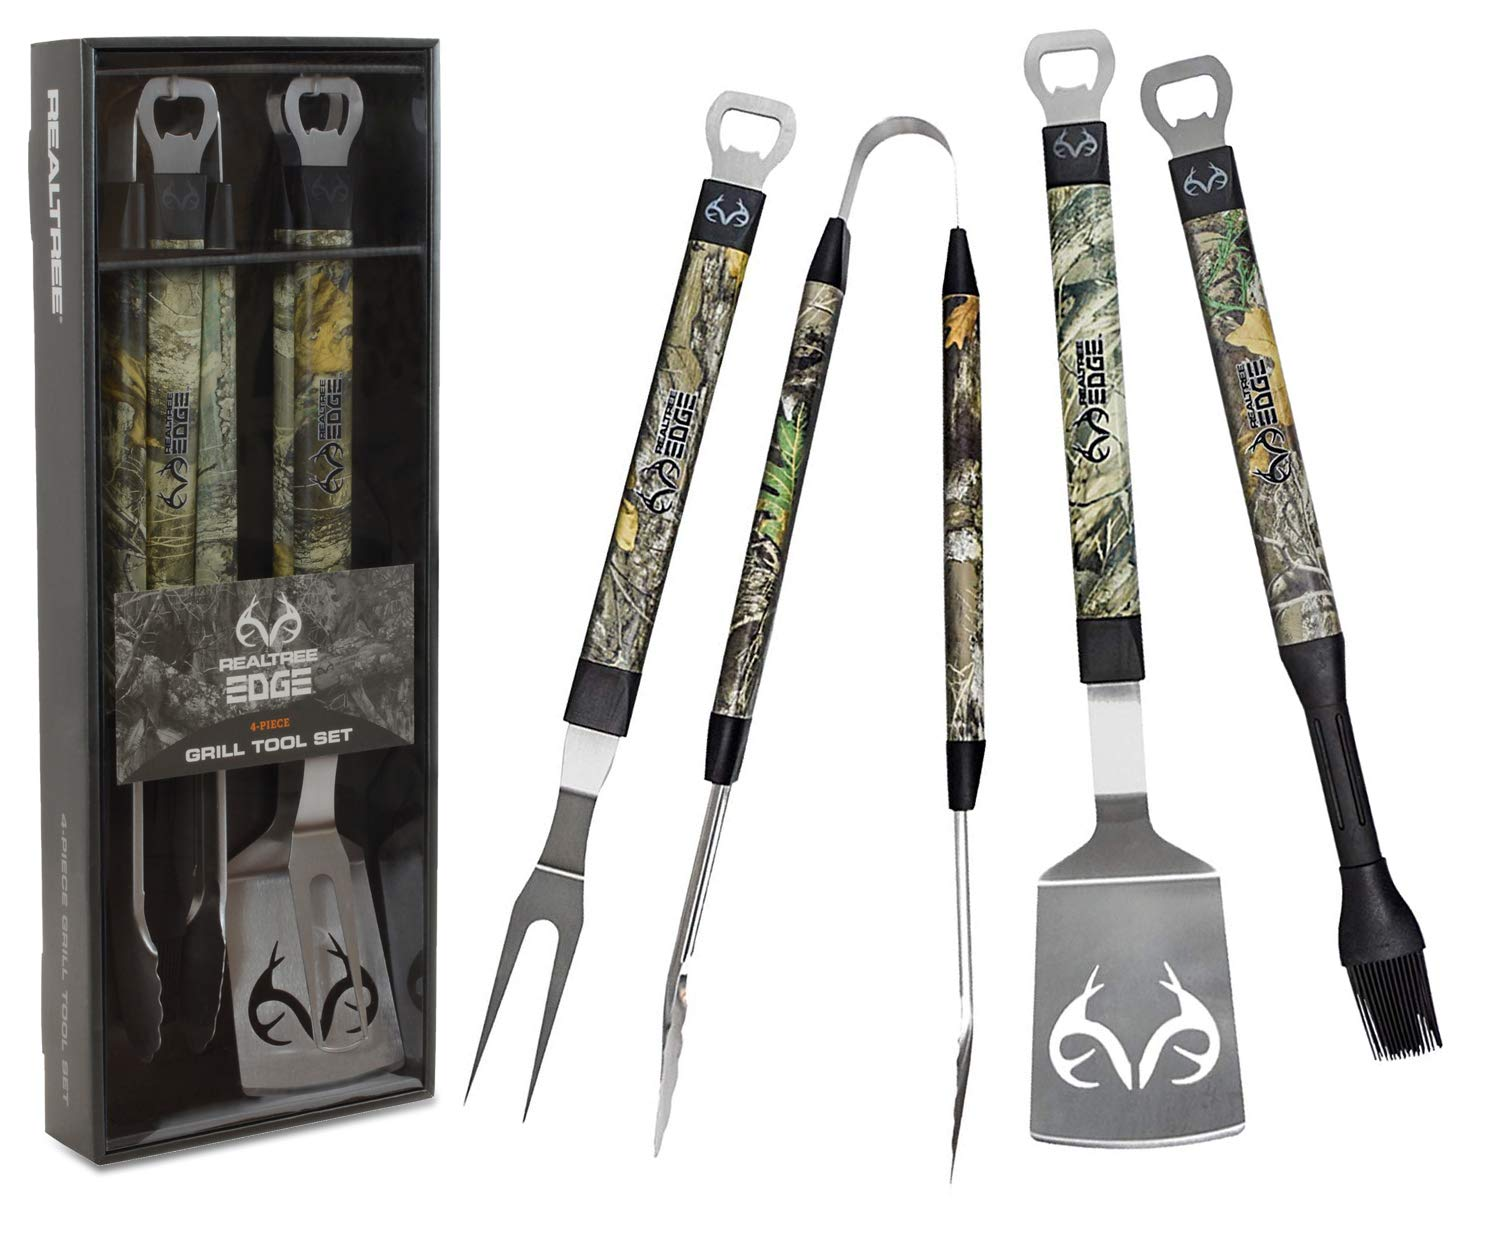 Realtree Edge BBQ Grill Accessories, Includes 18 Stainless Steel Tools Spatula, Tongs, Fork, and Basting Brush, 4 Piece Set